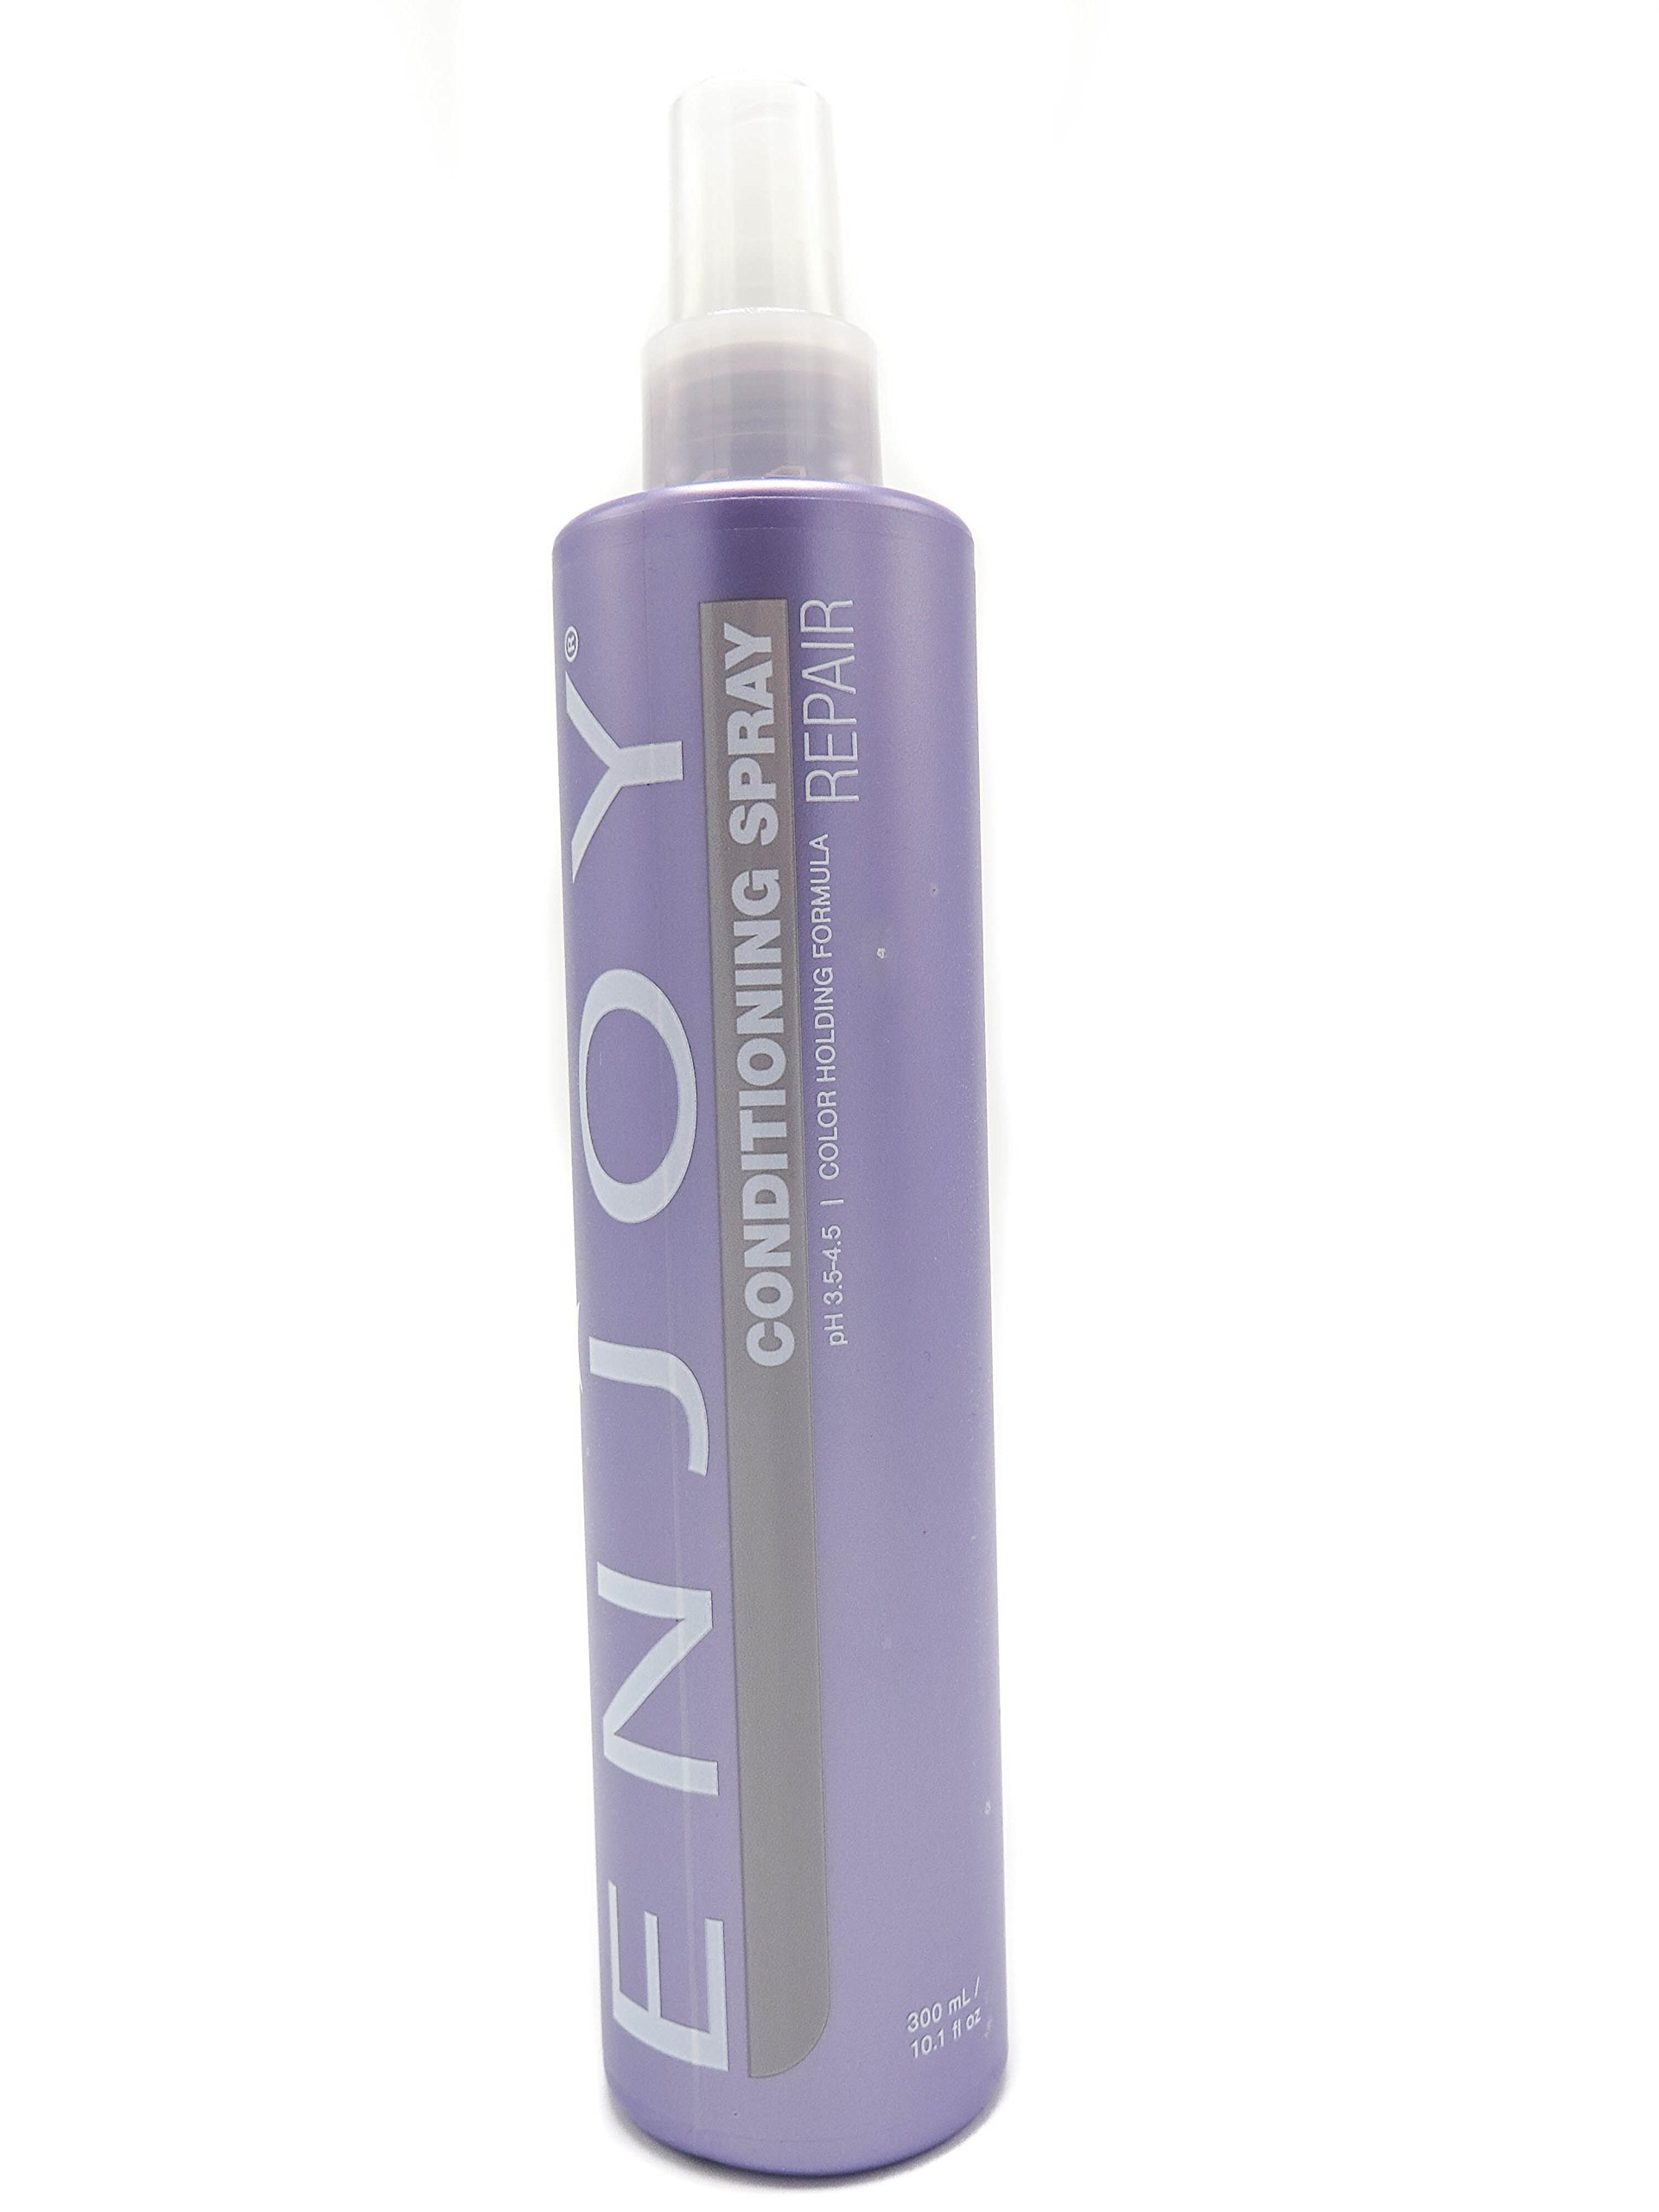 ENJOY Conditioning Spray (10.1 OZ) – Moisture-Rich, Smoothing, Shine-Enhancing Conditioning Spray